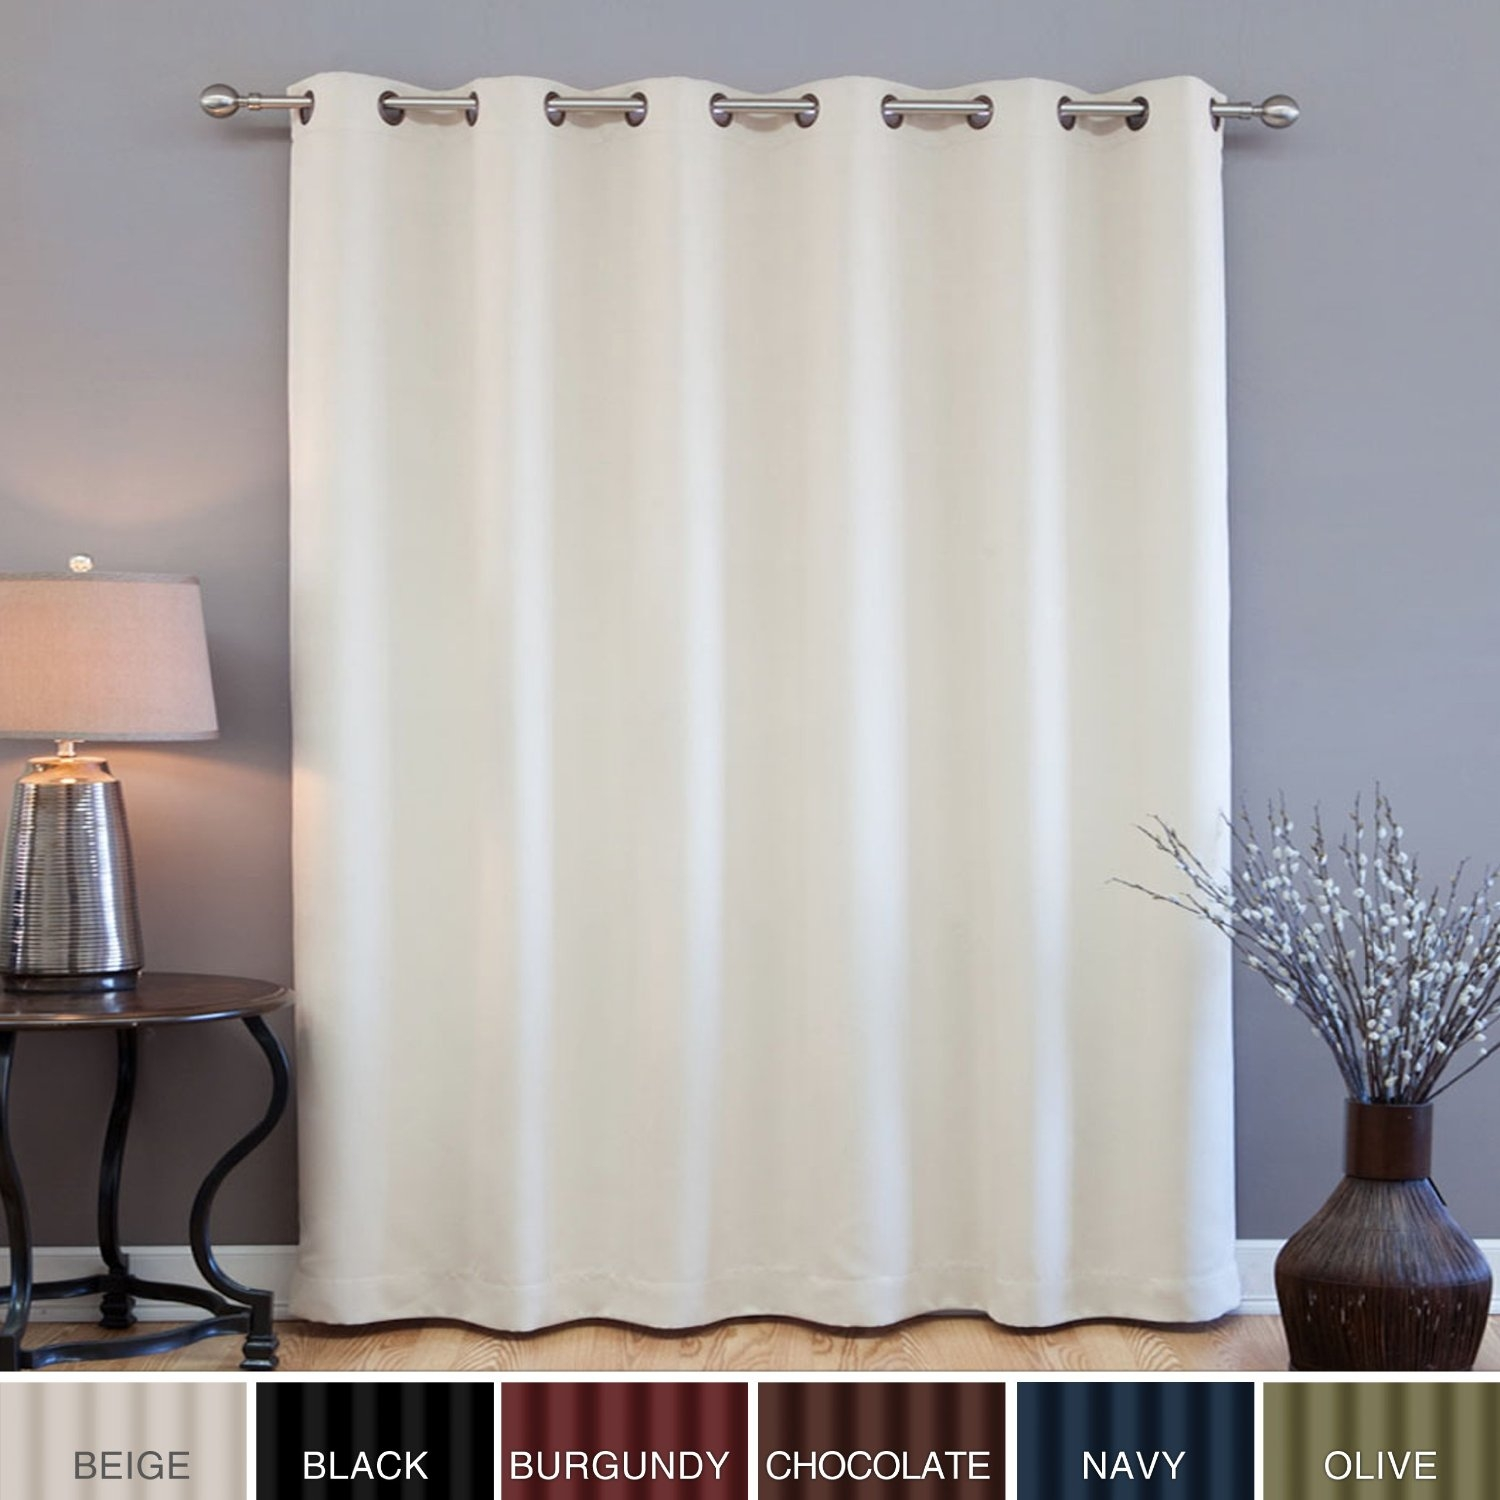 Fashionable Sliding Glass Door Curtains Design Ideas And Decor Within Sliding Glass Door Curtains (Image 10 of 25)